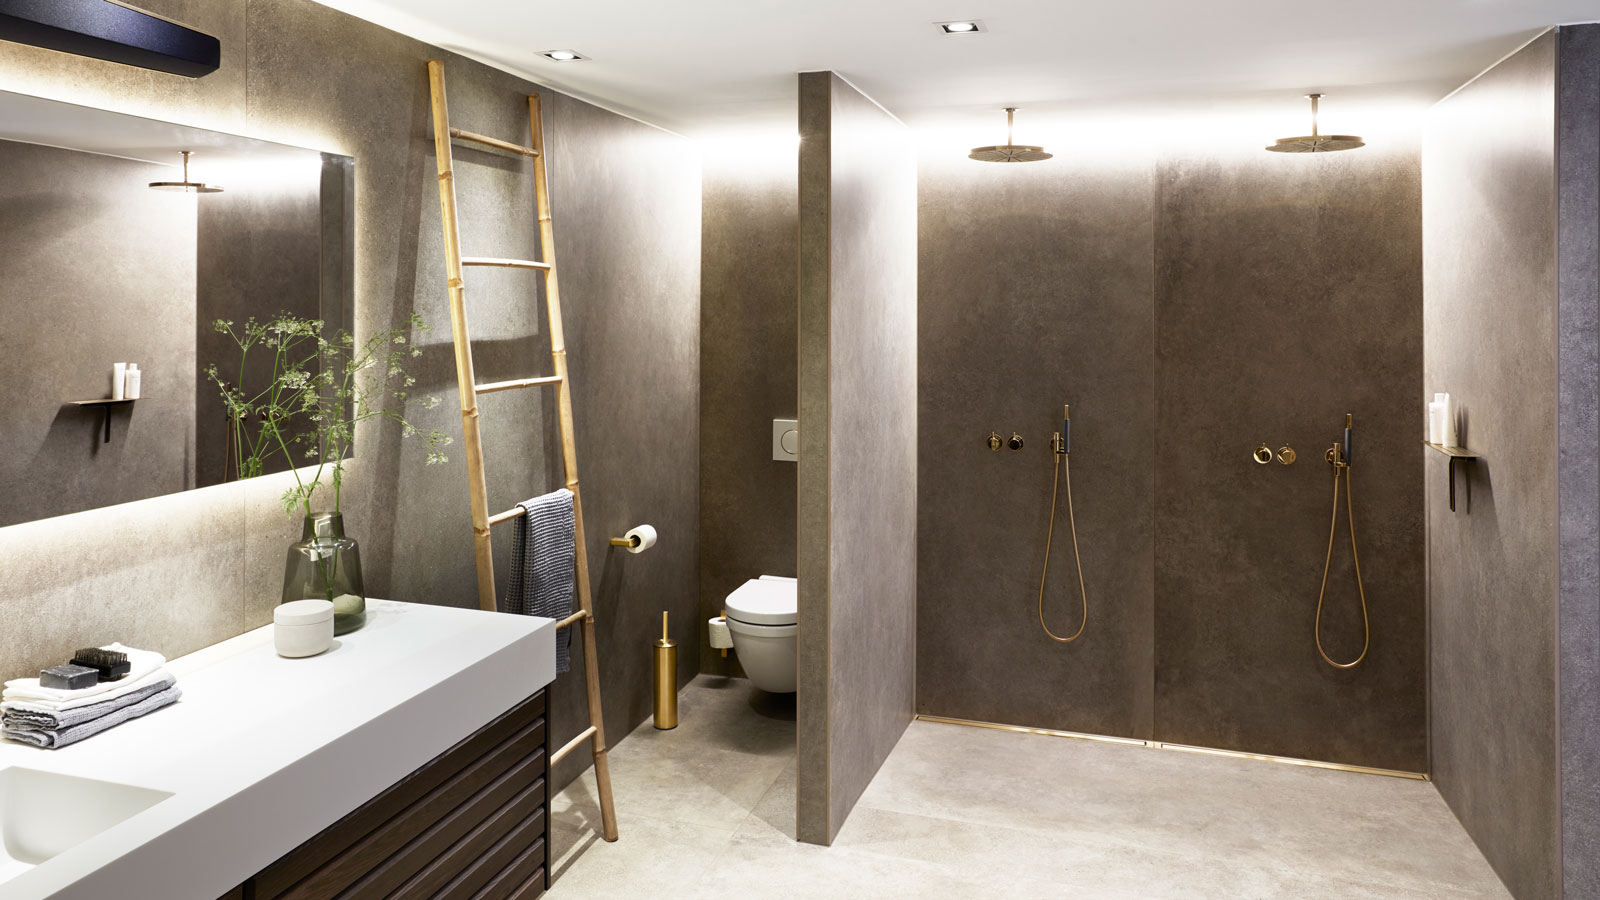 From Crawl Space To Luxurious And Functional Bathroom